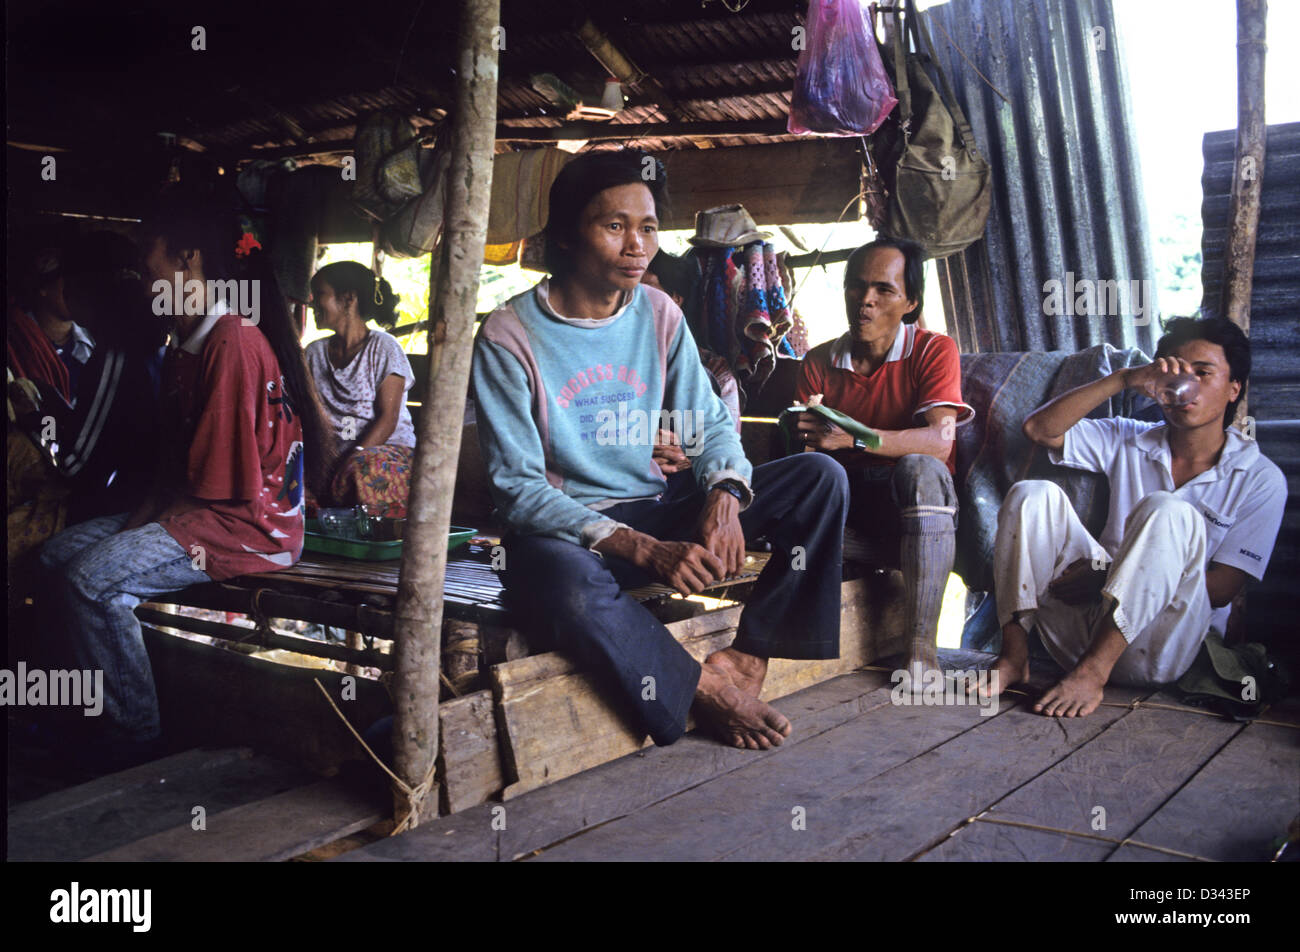 People of the Murat hill tribe in Malaysia - Stock Image